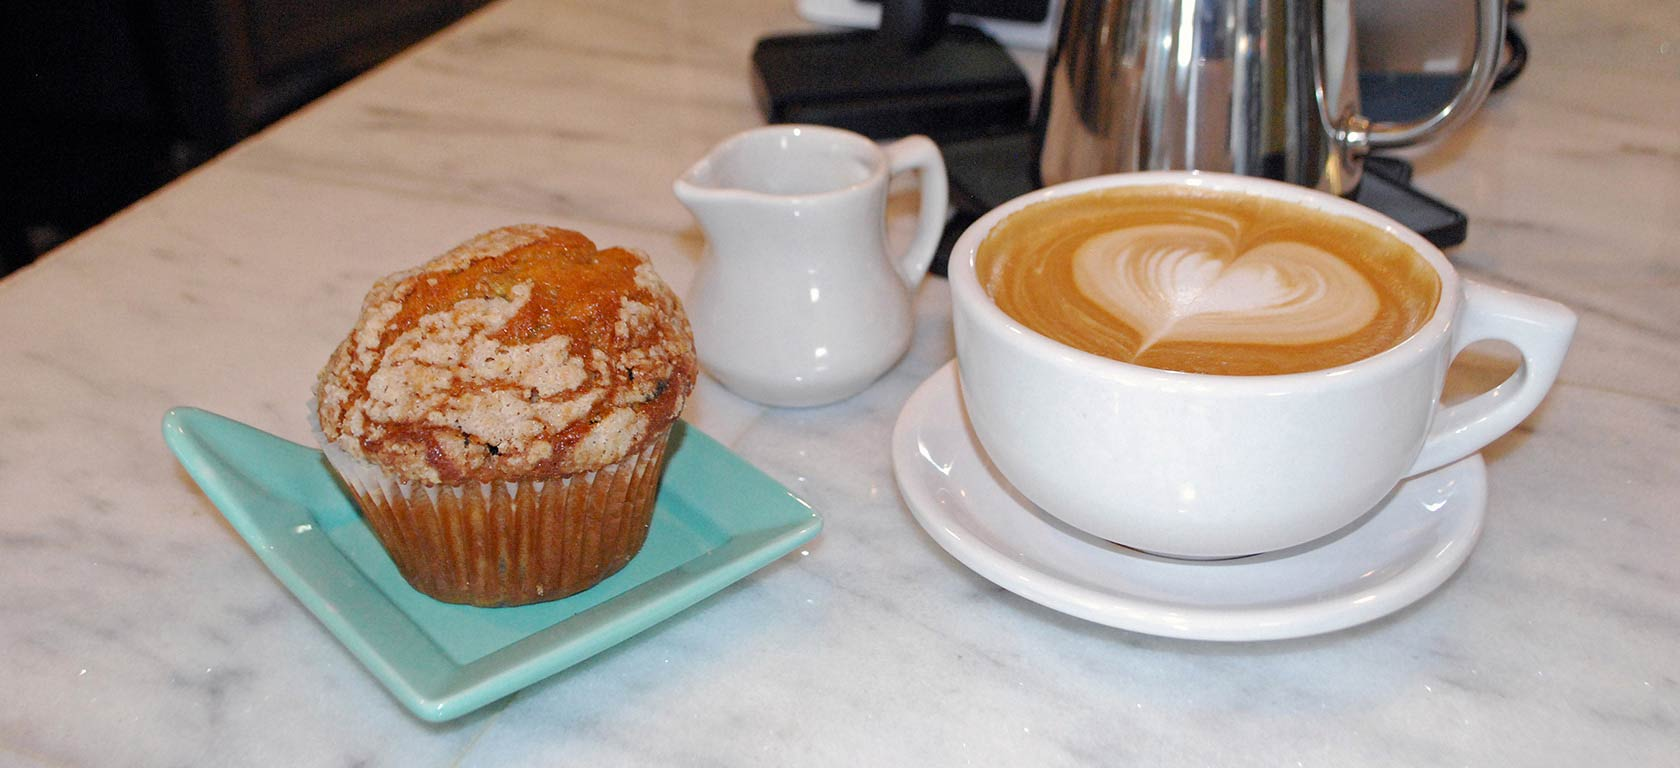 Ceramic coffee mug accompanied by an appetizing muffin on a curious green ceramic holder